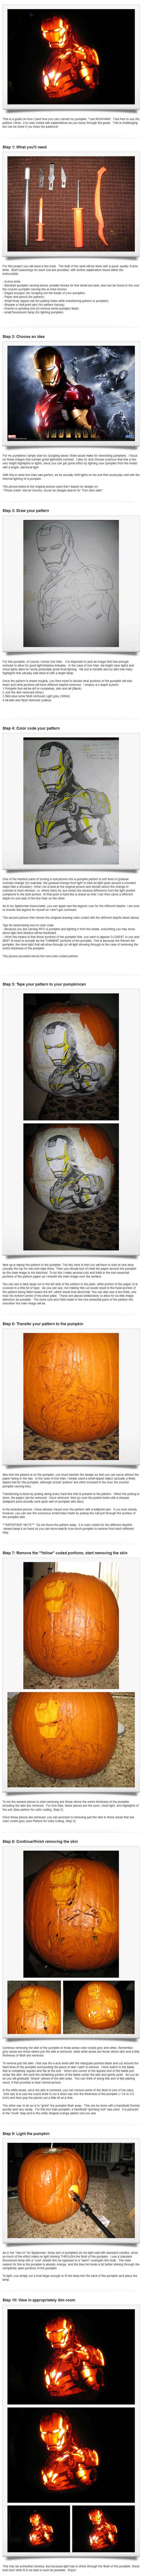 How to Carve Iron Man on Your Pumpkin (Picture Instructions)